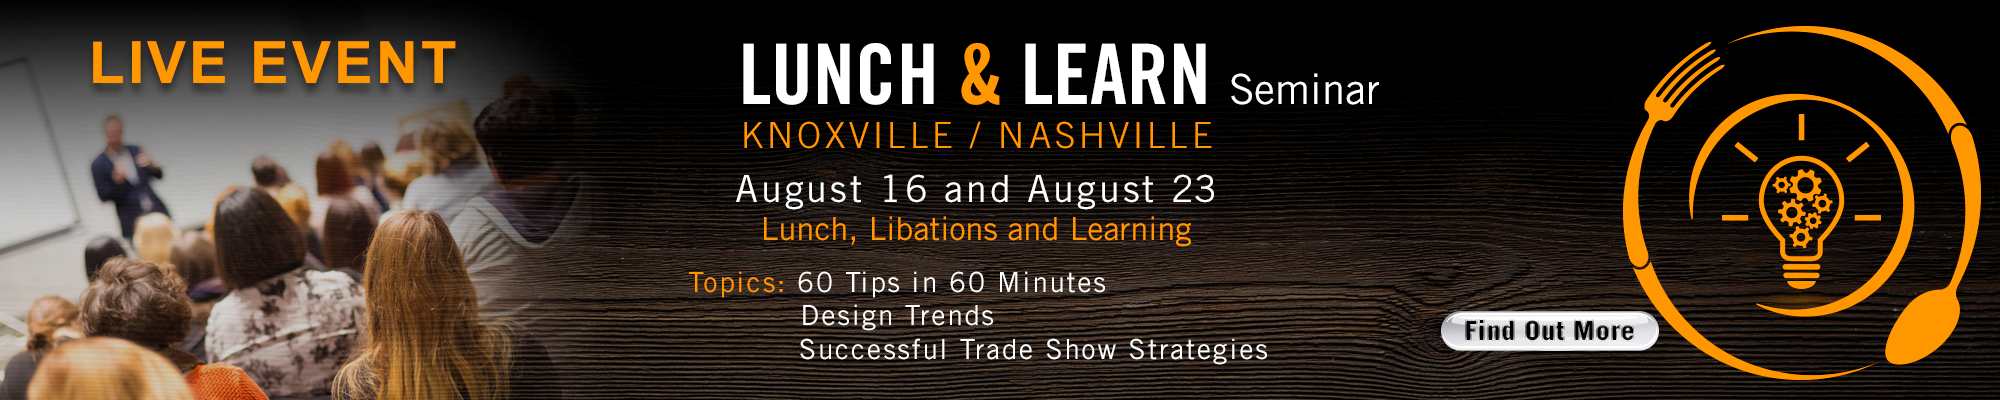 Taste What's Possible Lunch and Learn